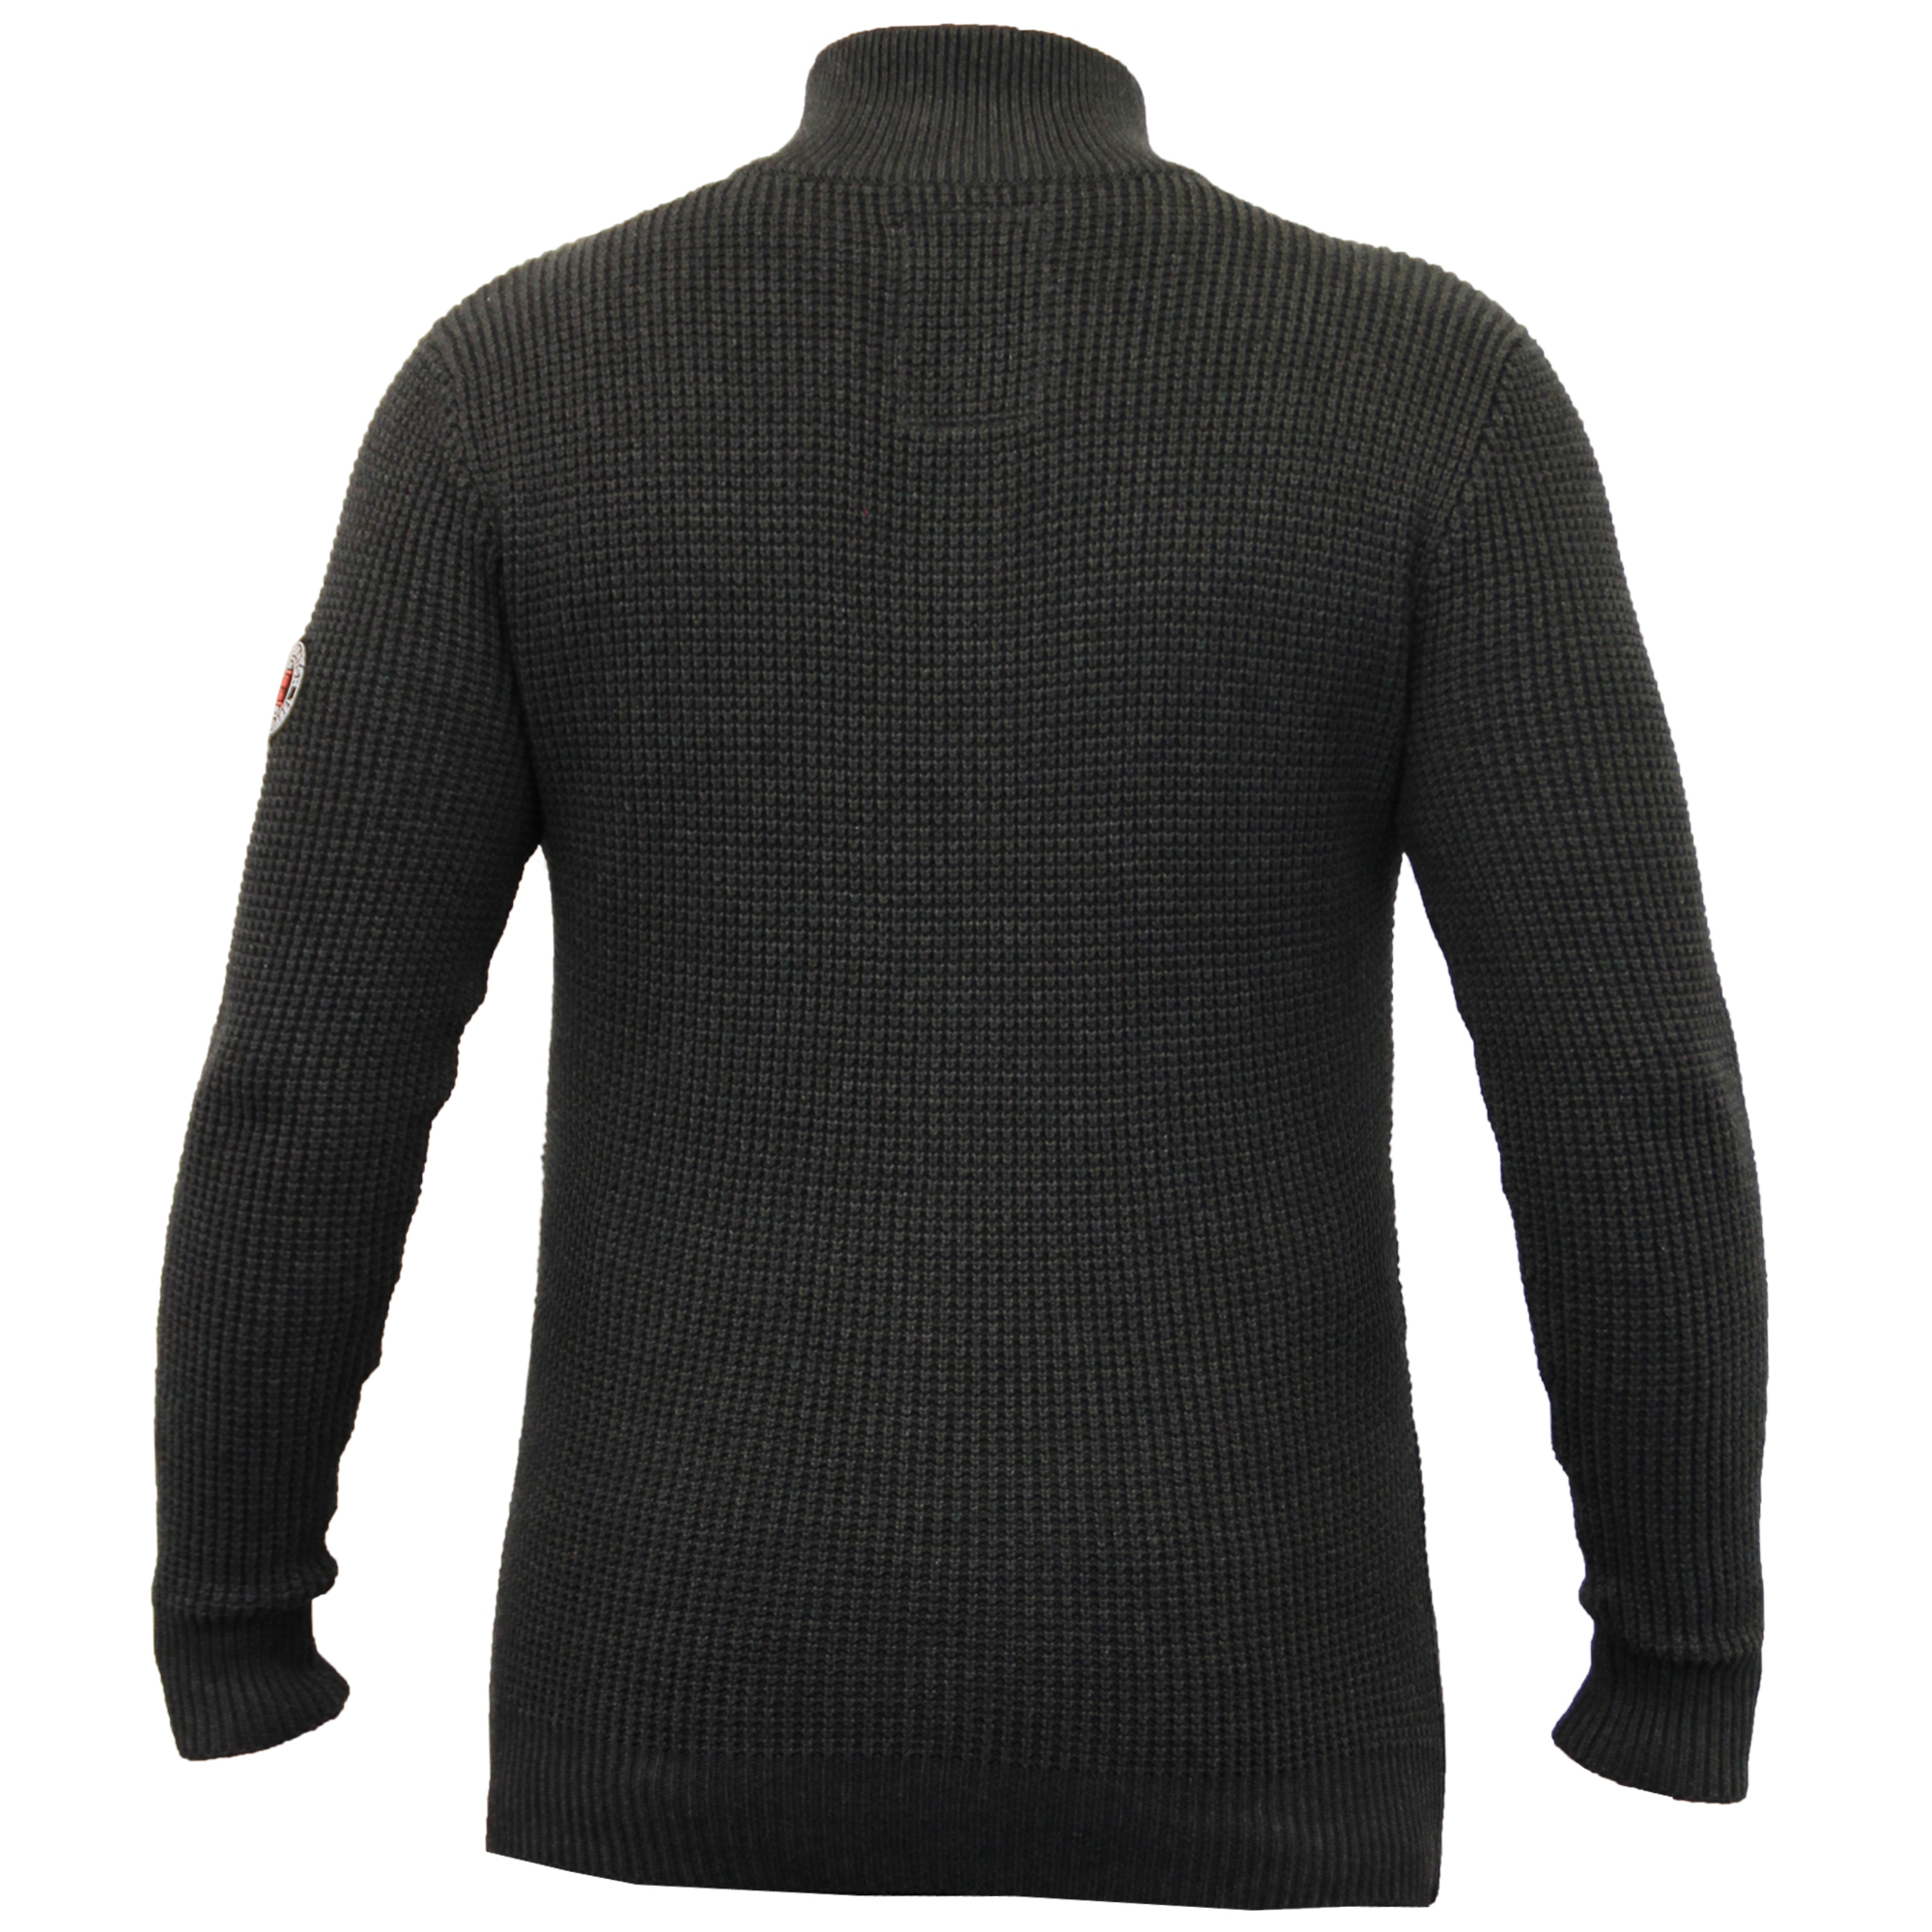 Mens Jumper Crosshatch Knitted Sweater Pullover Waffle Top ...